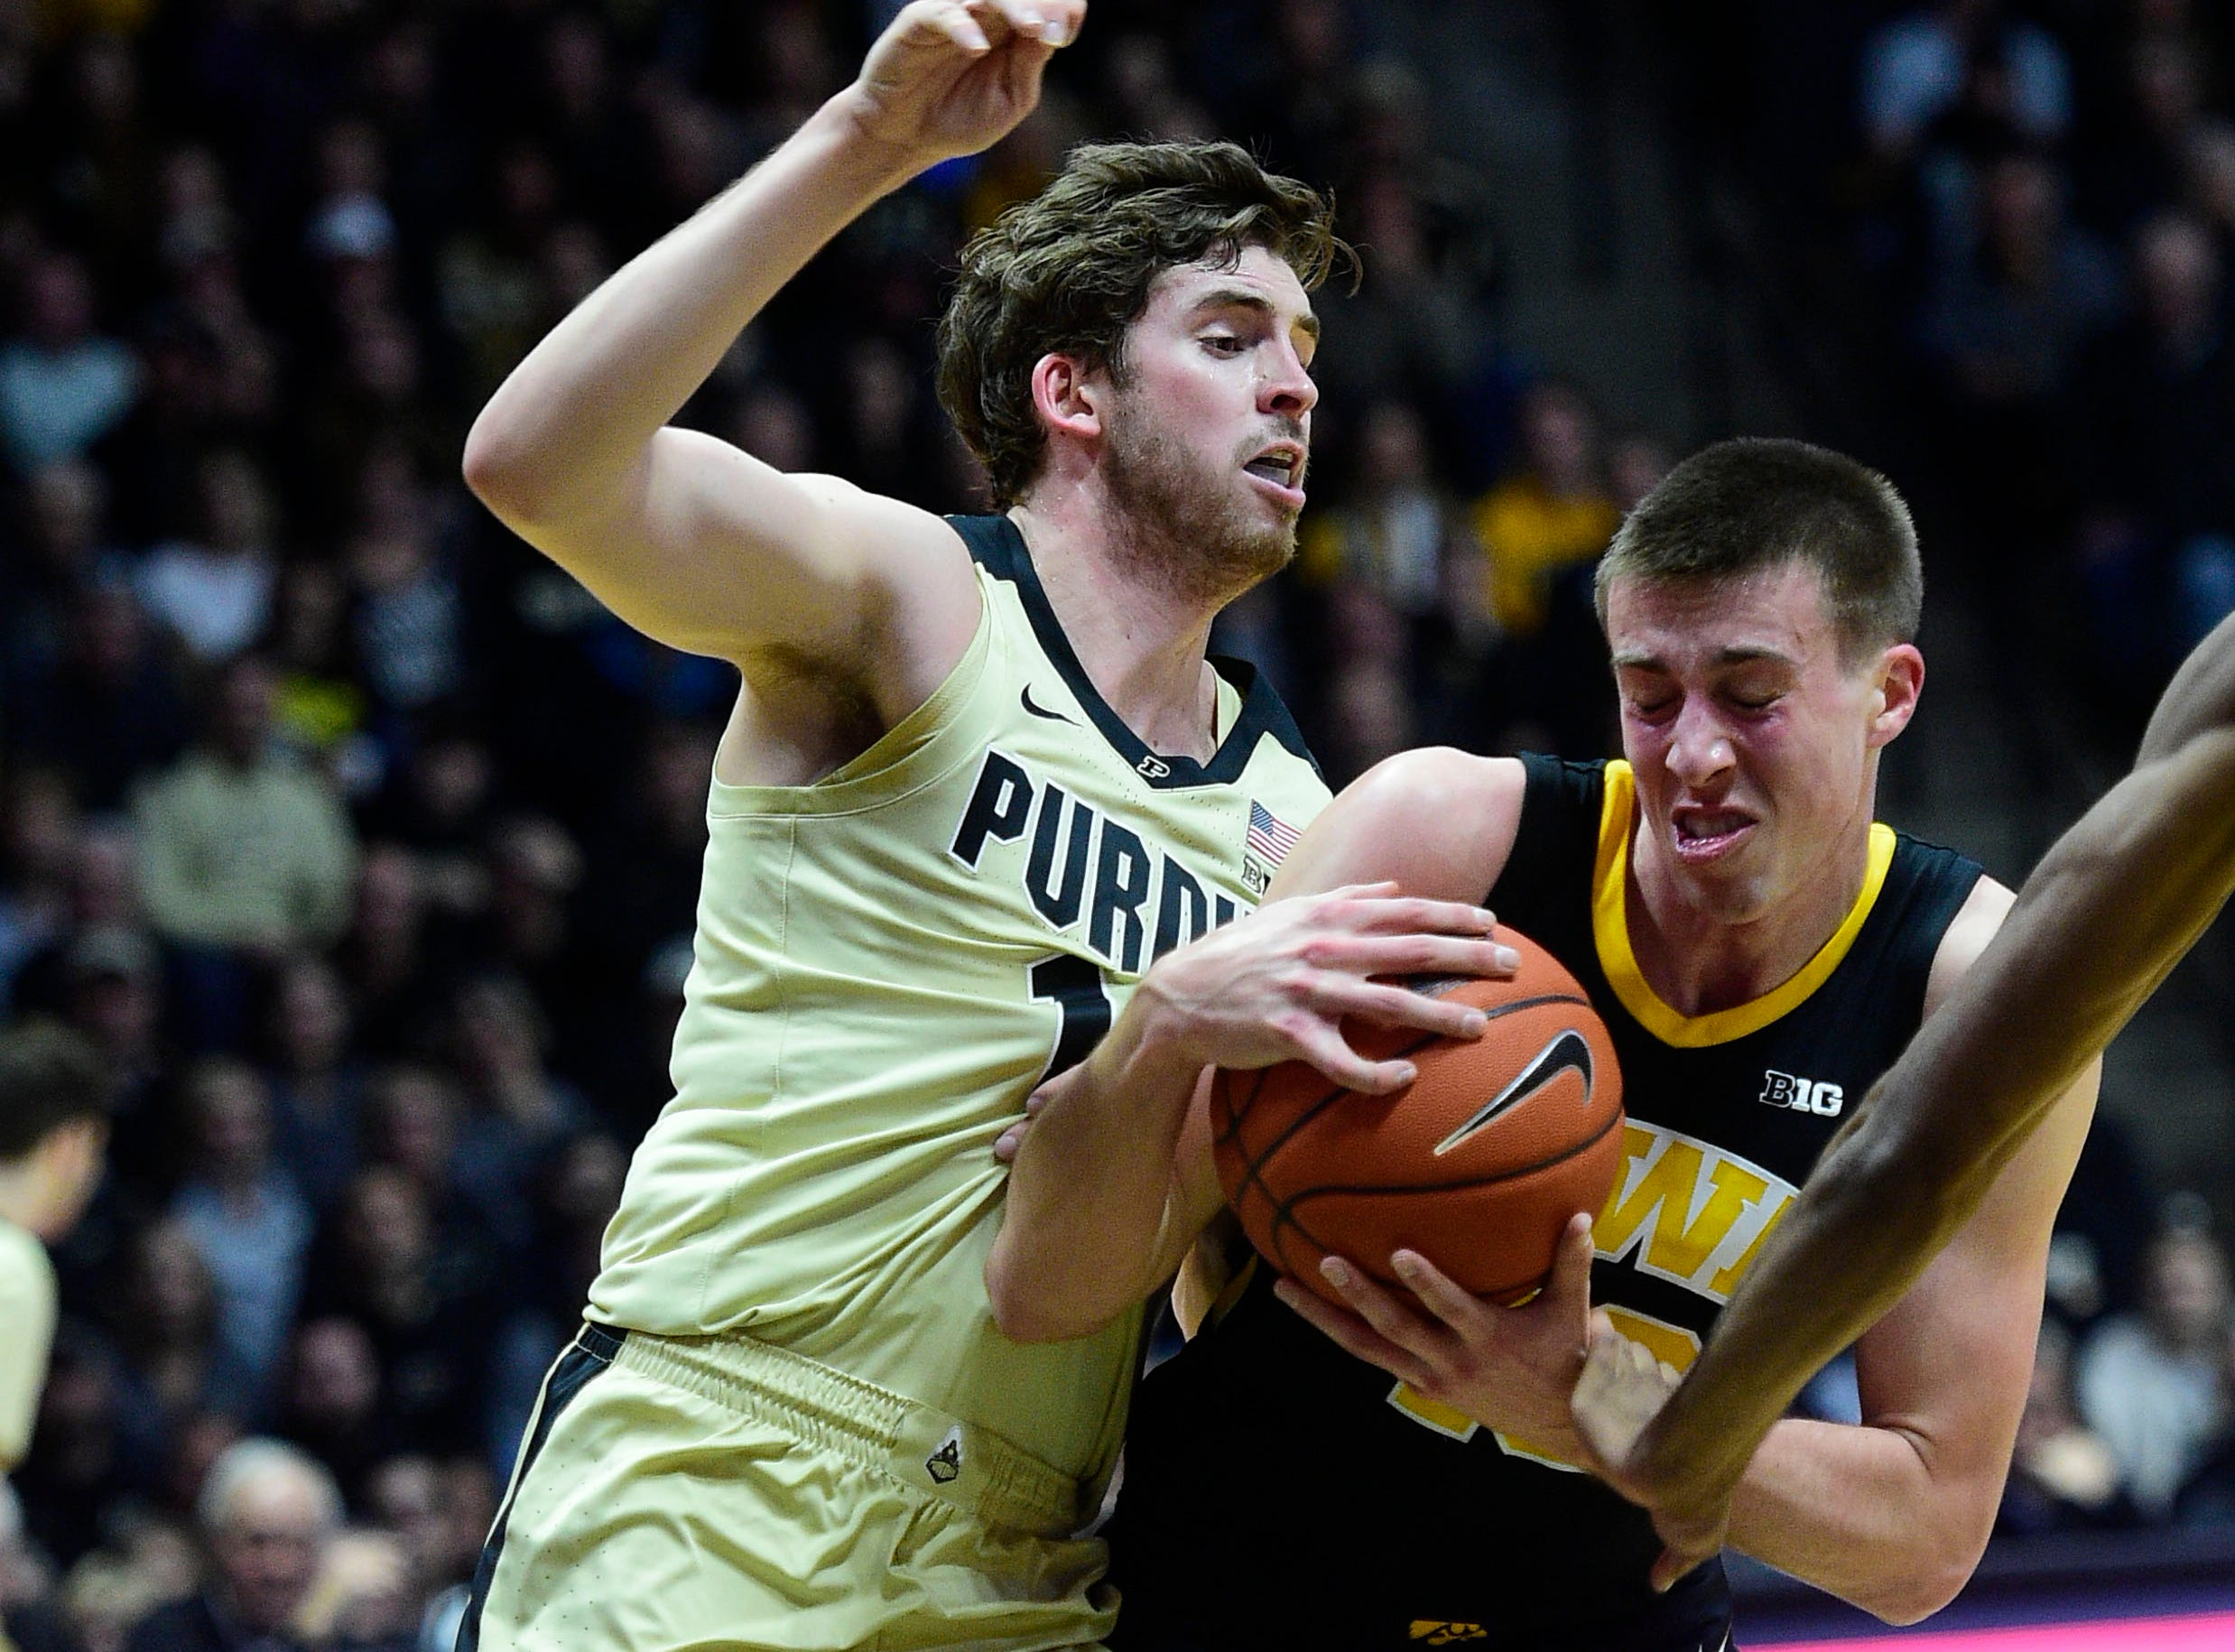 Jan 3, 2019; West Lafayette, IN, USA;  Iowa Hawkeyes guard Joe Weiskamp  (10) drives against Purdue Boilermakers guard Ryan Cline (14) in the first half at Mackey Arena. Mandatory Credit: Thomas J. Russo-USA TODAY Sports